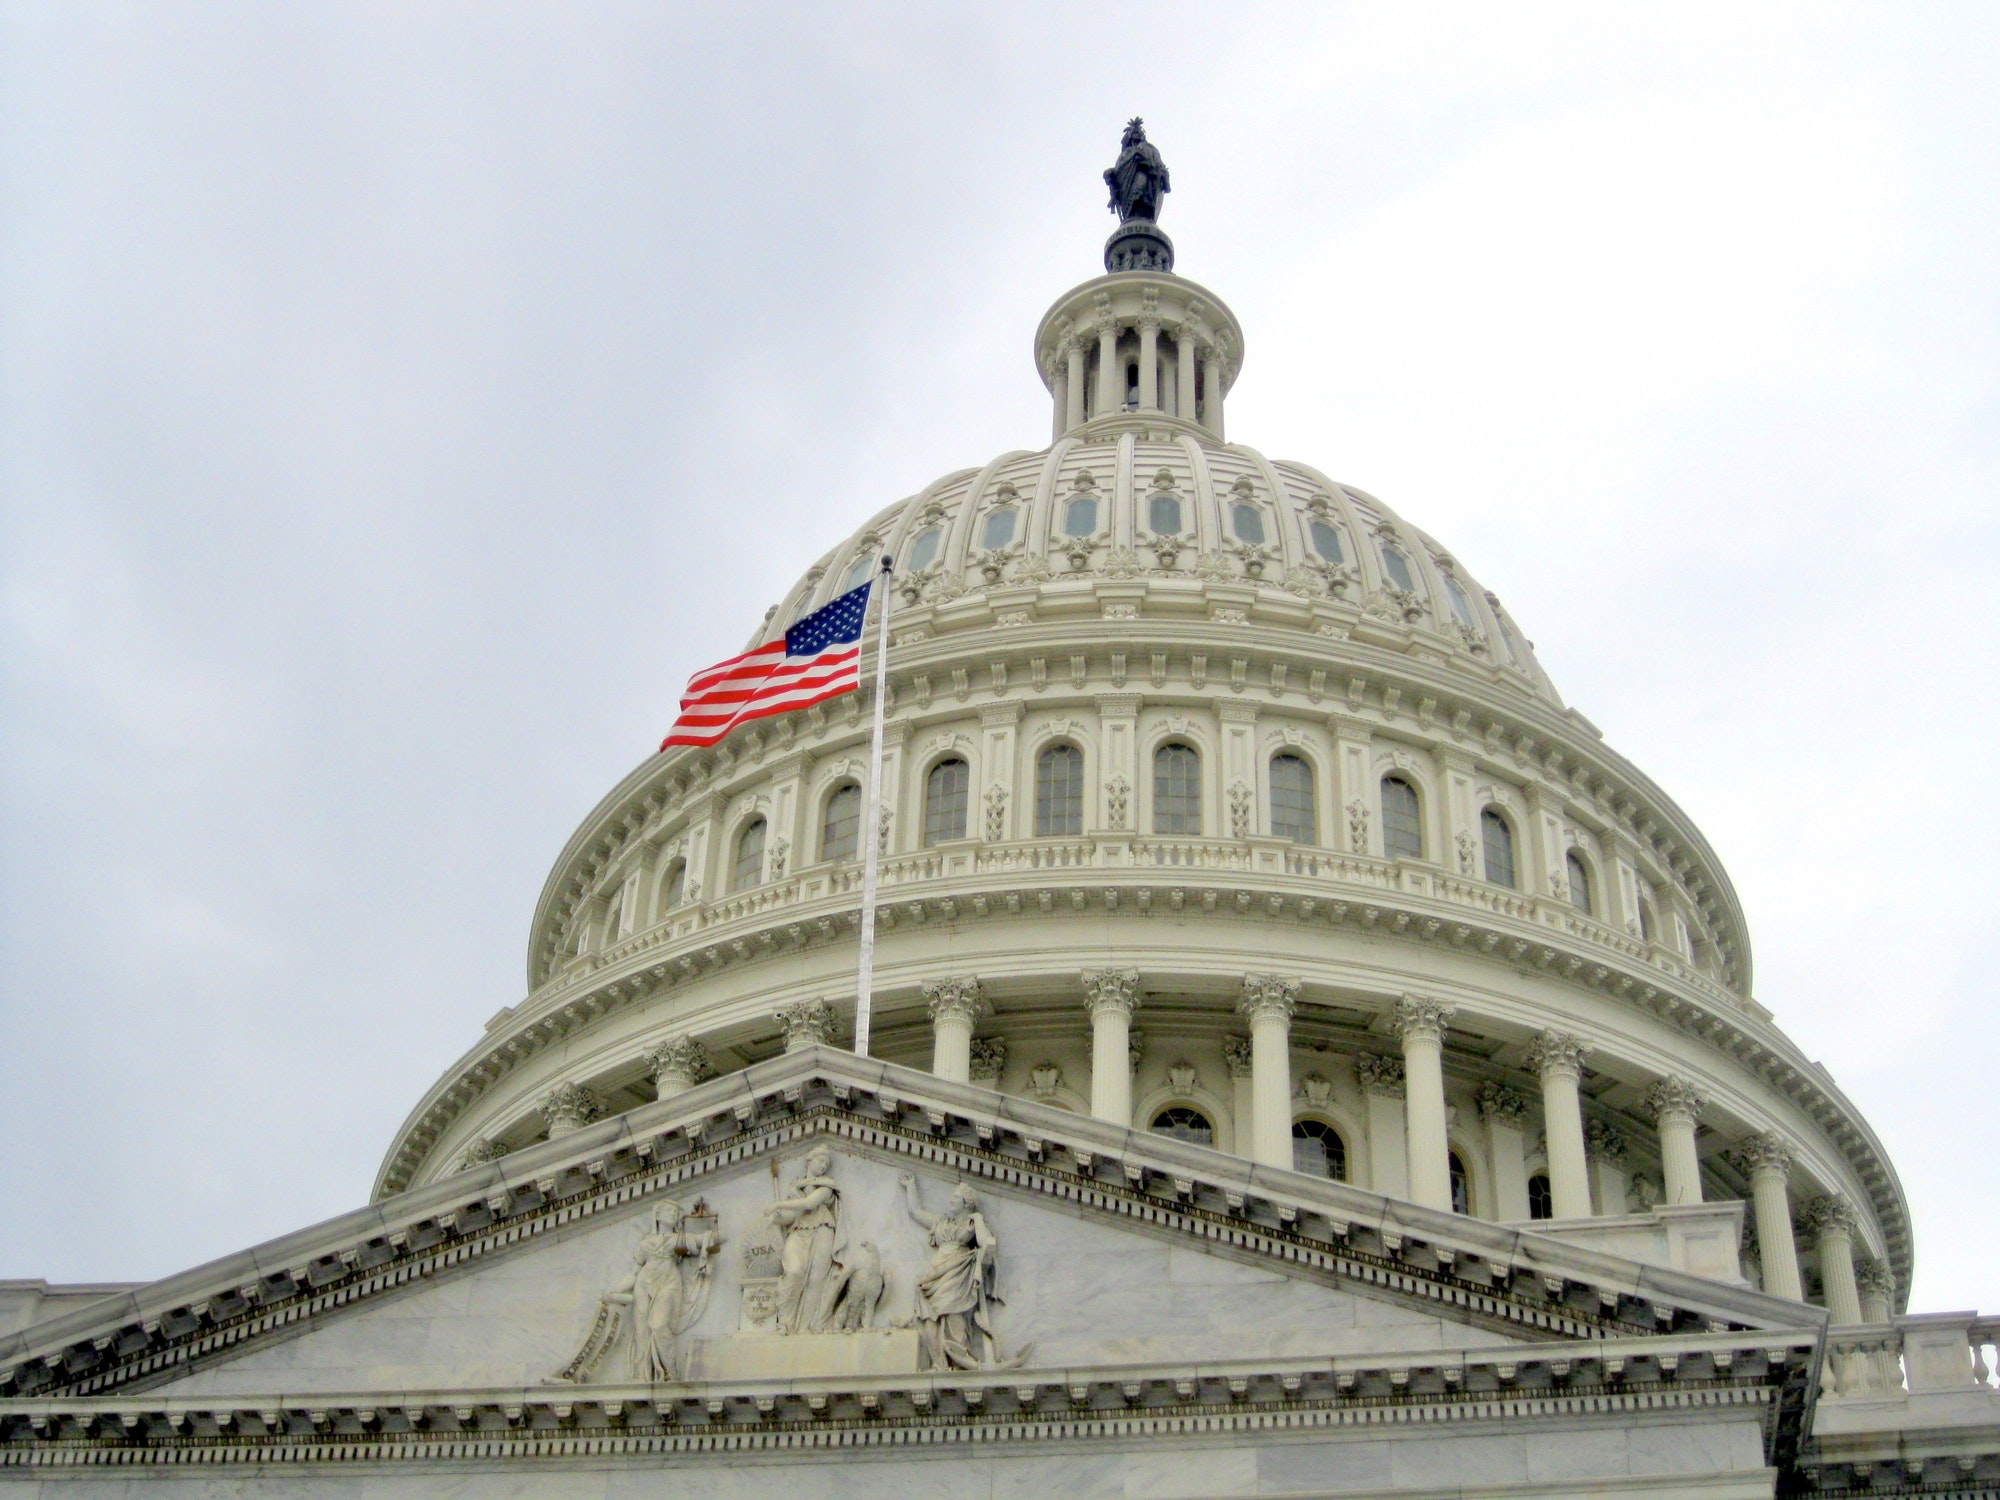 View of the Capitol Building Dome with the United States flag. Washington D.C. USA travel